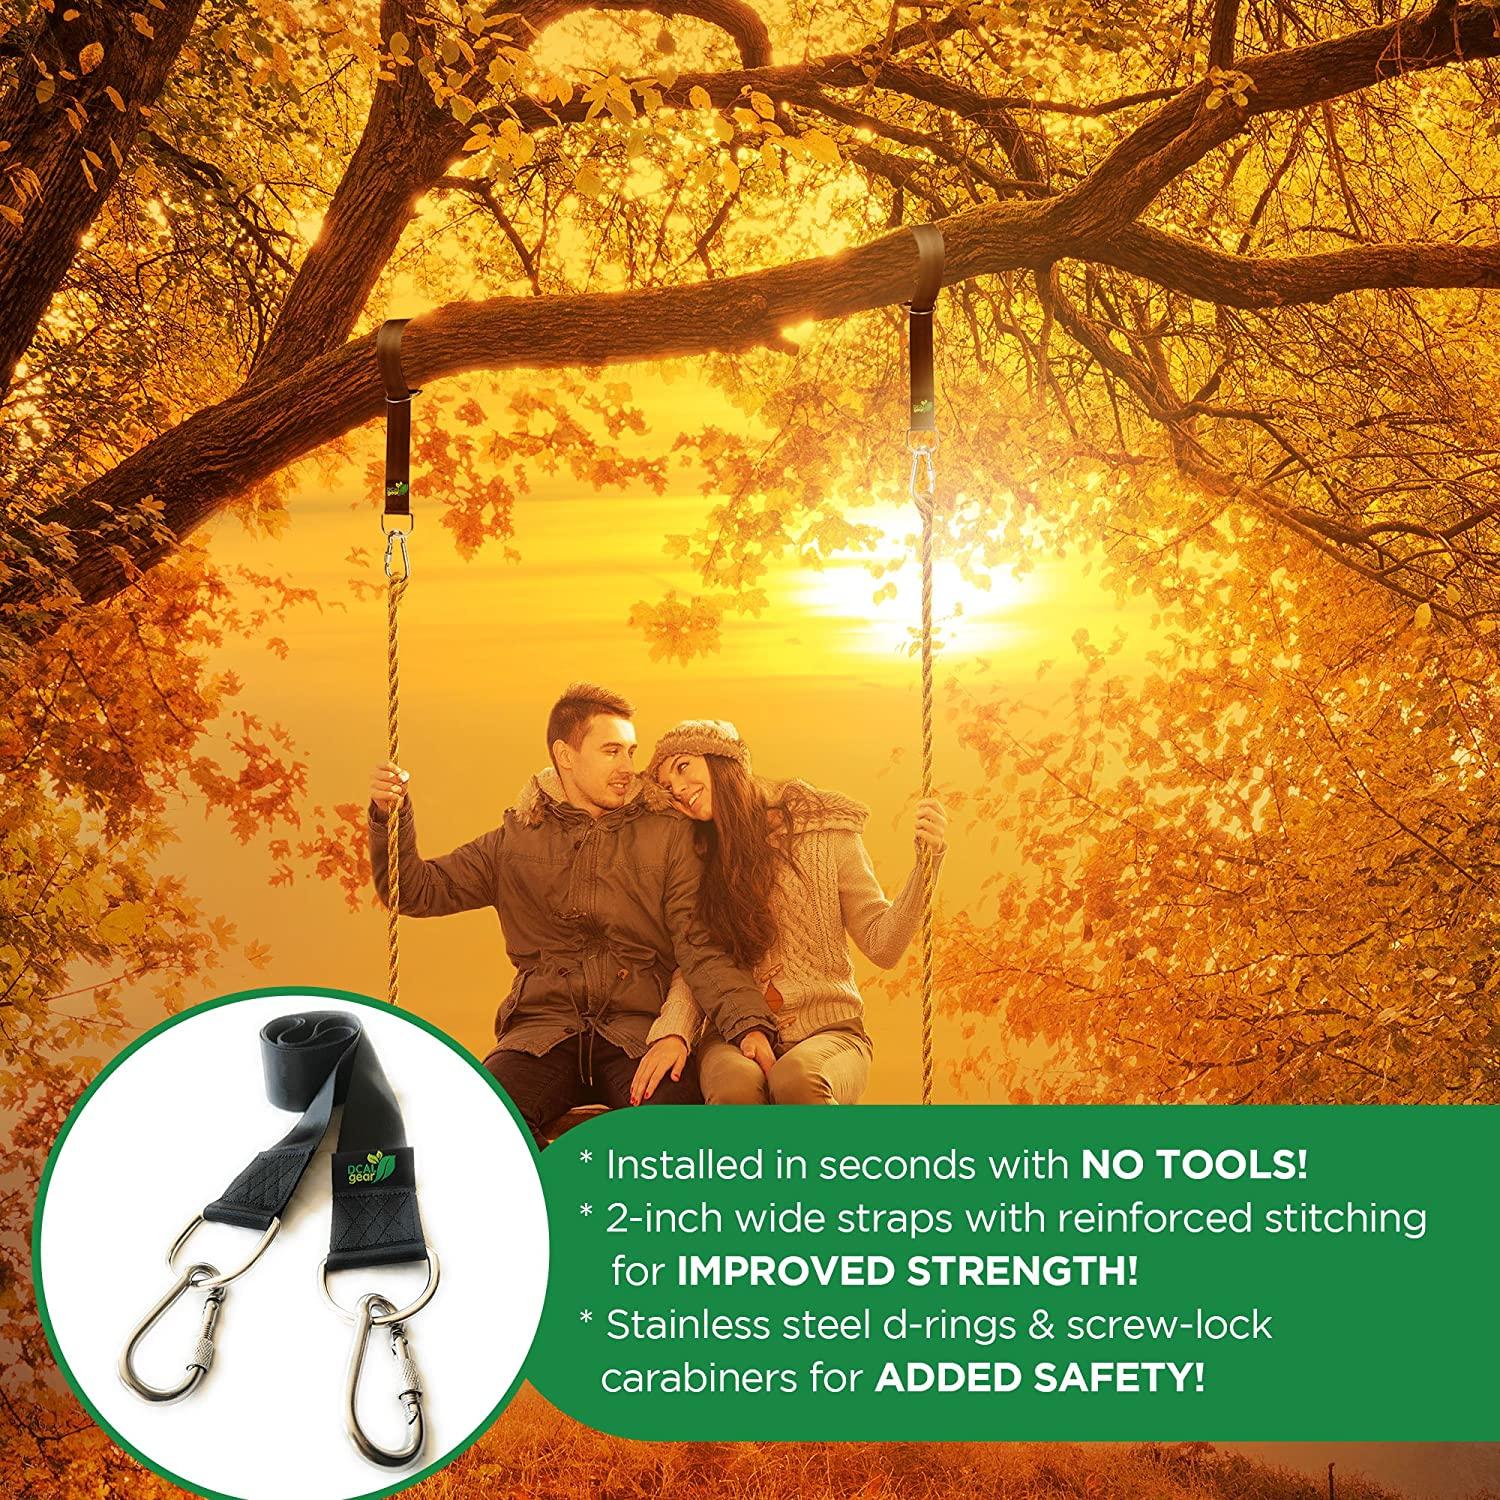 Better Than Chain or Rope! Safe Fits Hammocks /& Most Swing Seats Easy 30 Sec Install on Outdoor Toys Two 5 ft Tree Straps Hold 2000 lb Large Carabiners /& D Rings Best Tree Swing Hanging Kit